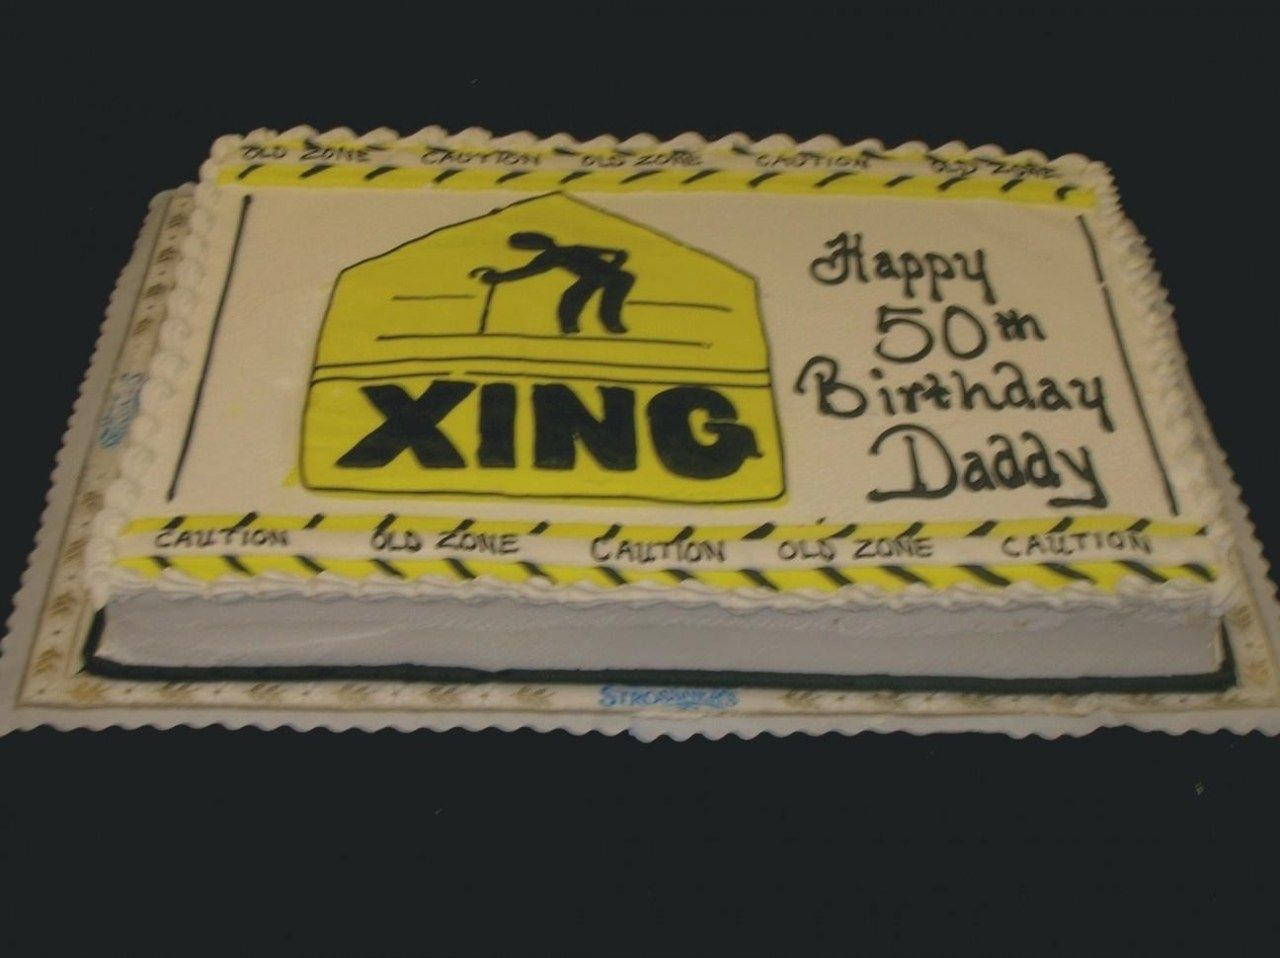 23 Best Picture Of Over The Hill Birthday Cakes Over The Hill Cakes 50th Birthday Cakes For Men Birthday Sheet Cakes